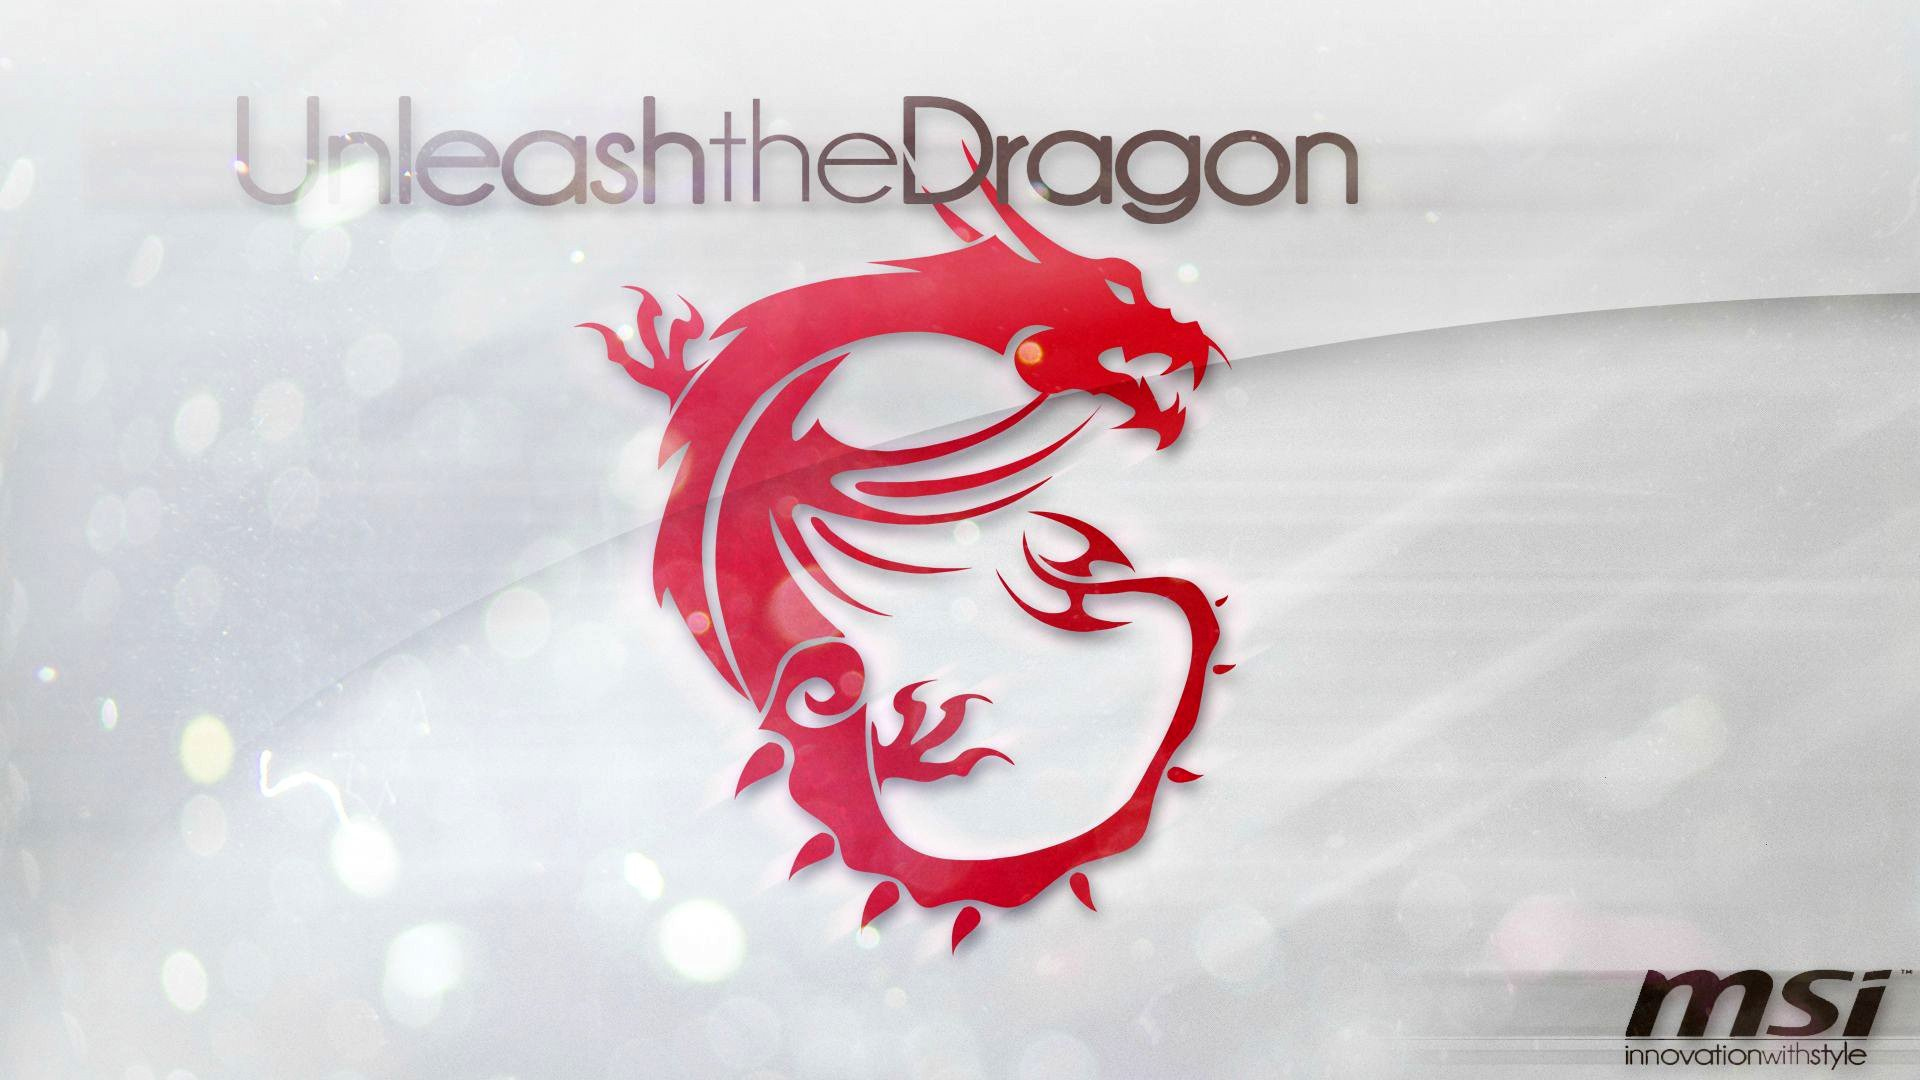 msi red dragon logo hd 1920x1080 1080p wallpaper compatible for 1920x1080